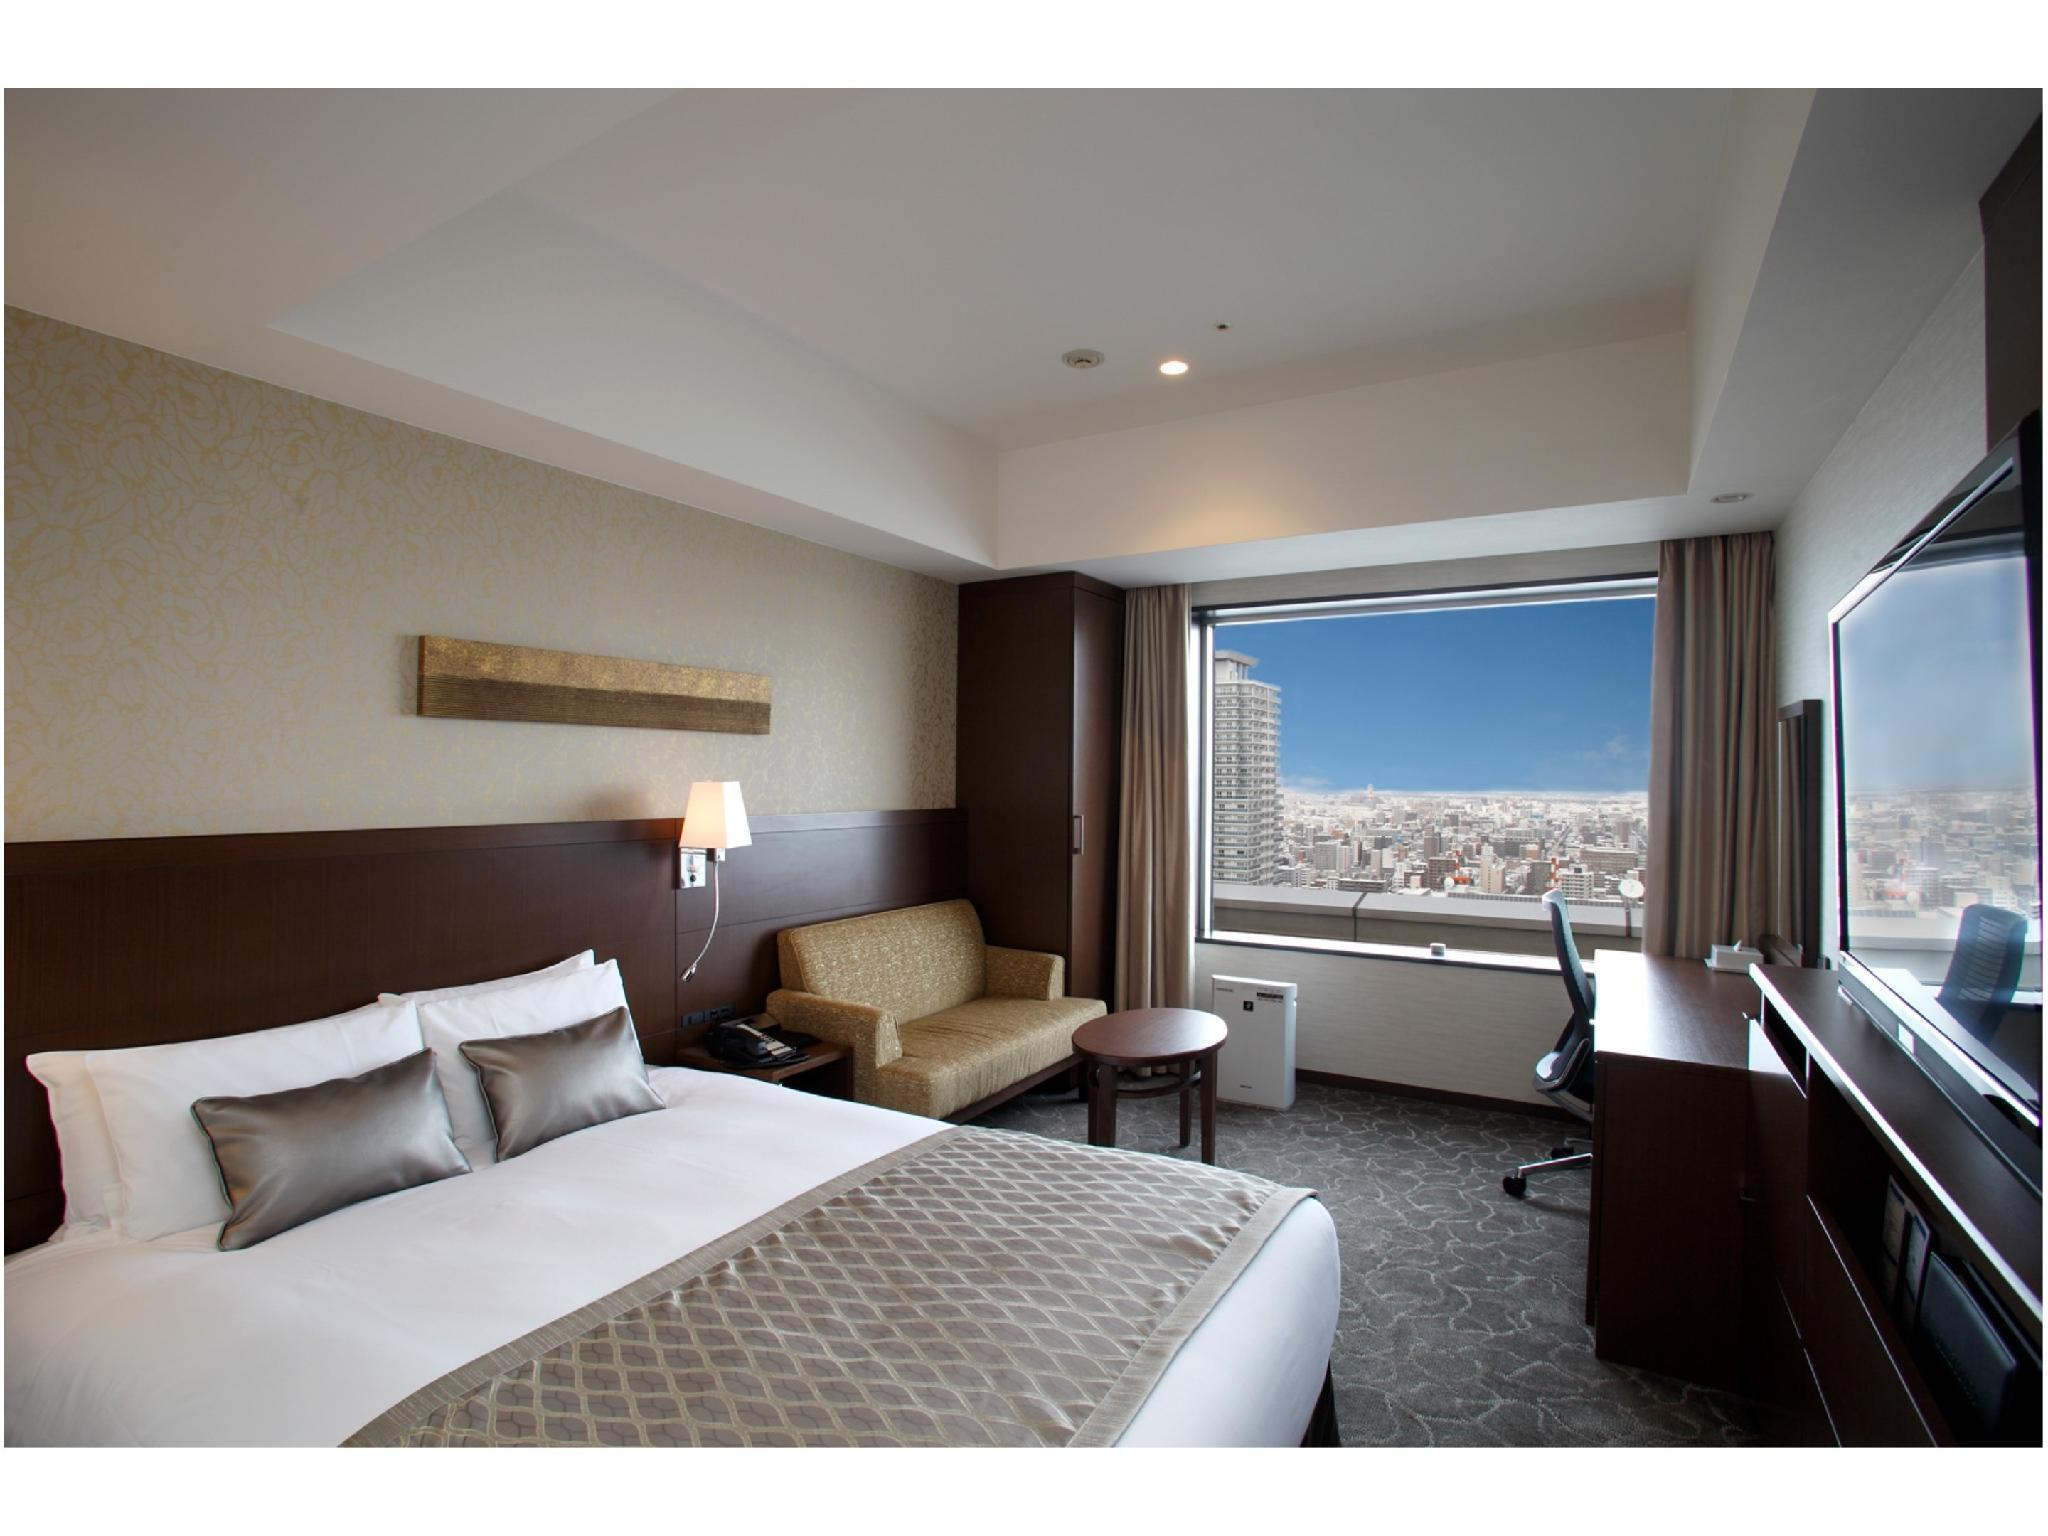 Moderate Double Room (Non-smoking) (Moderate Double Room - Non-Smoking)